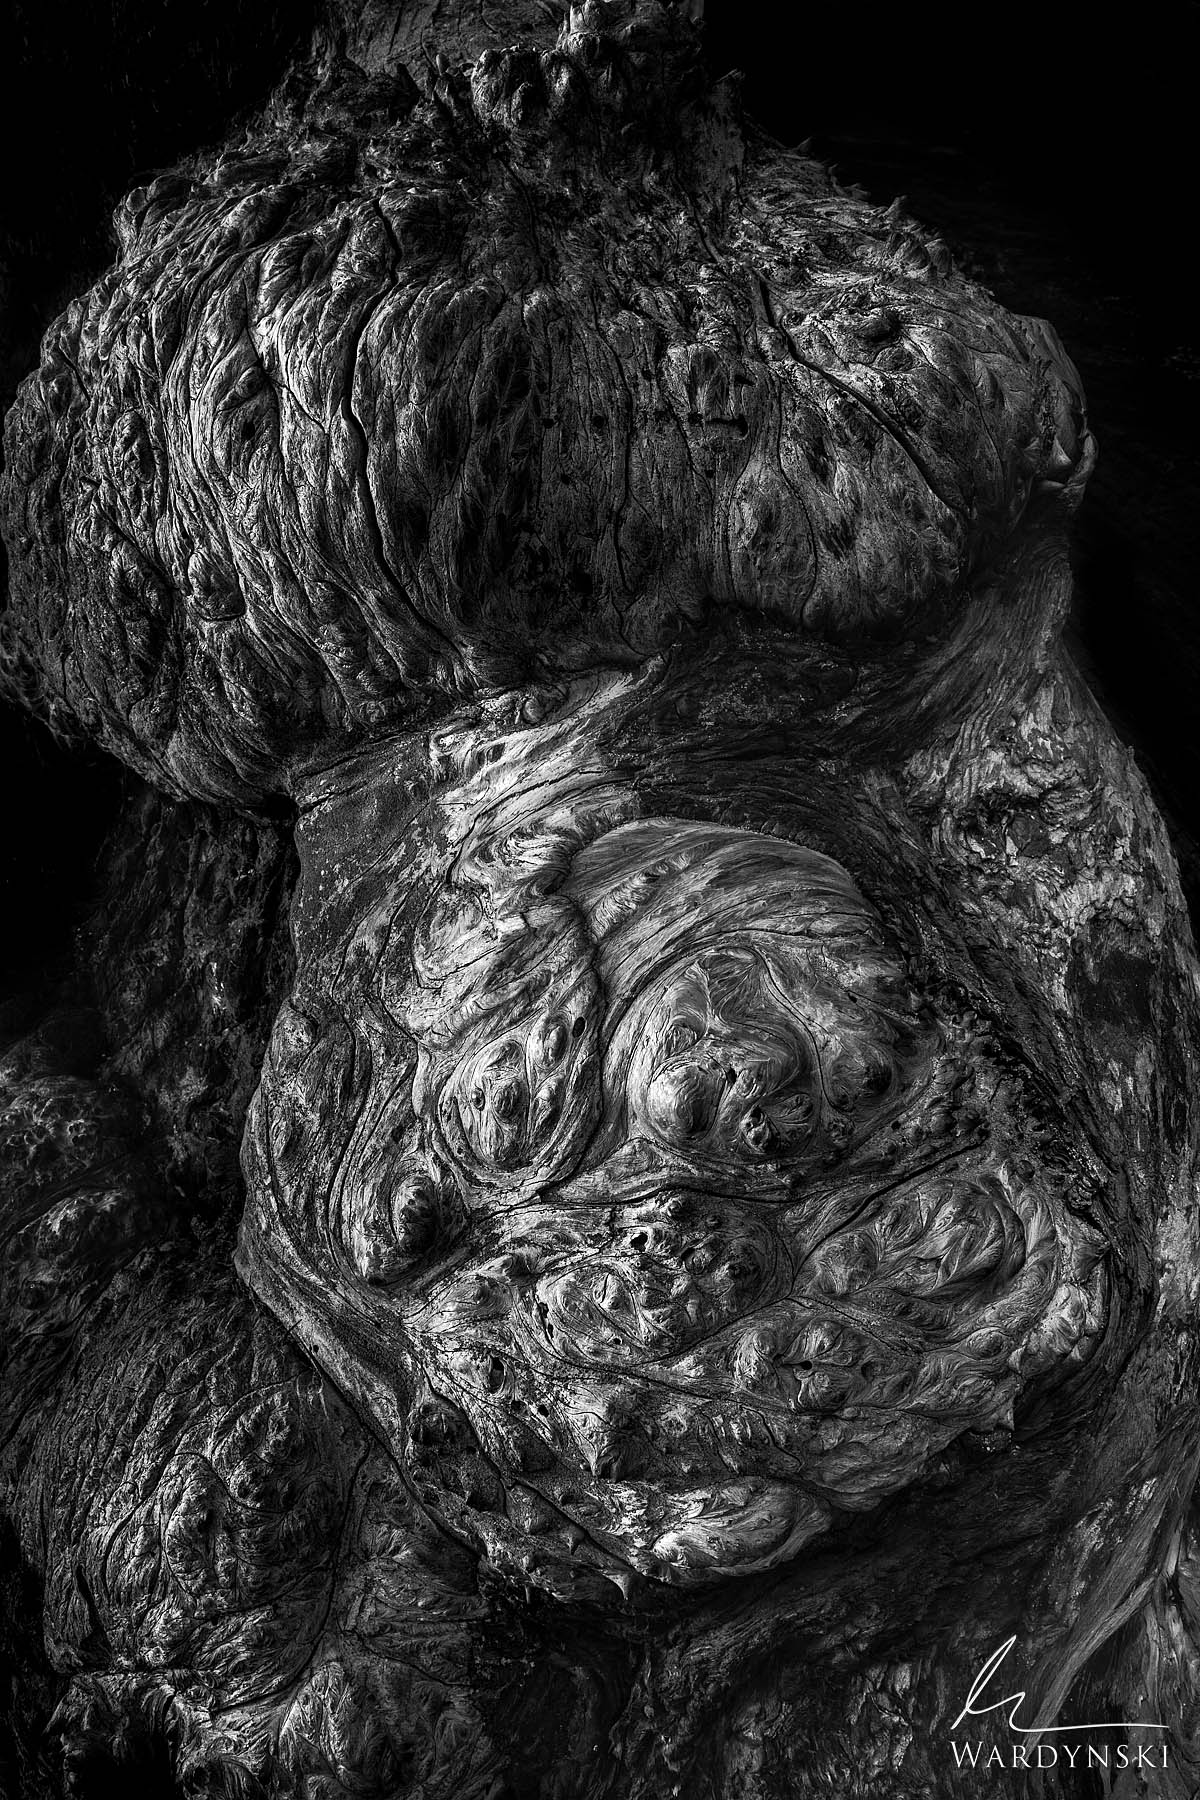 Black And White Fine Art Print   Limited Edition of 25  A burl on a Sequoia tree takes the form of a pregnant woman in Yosemite...